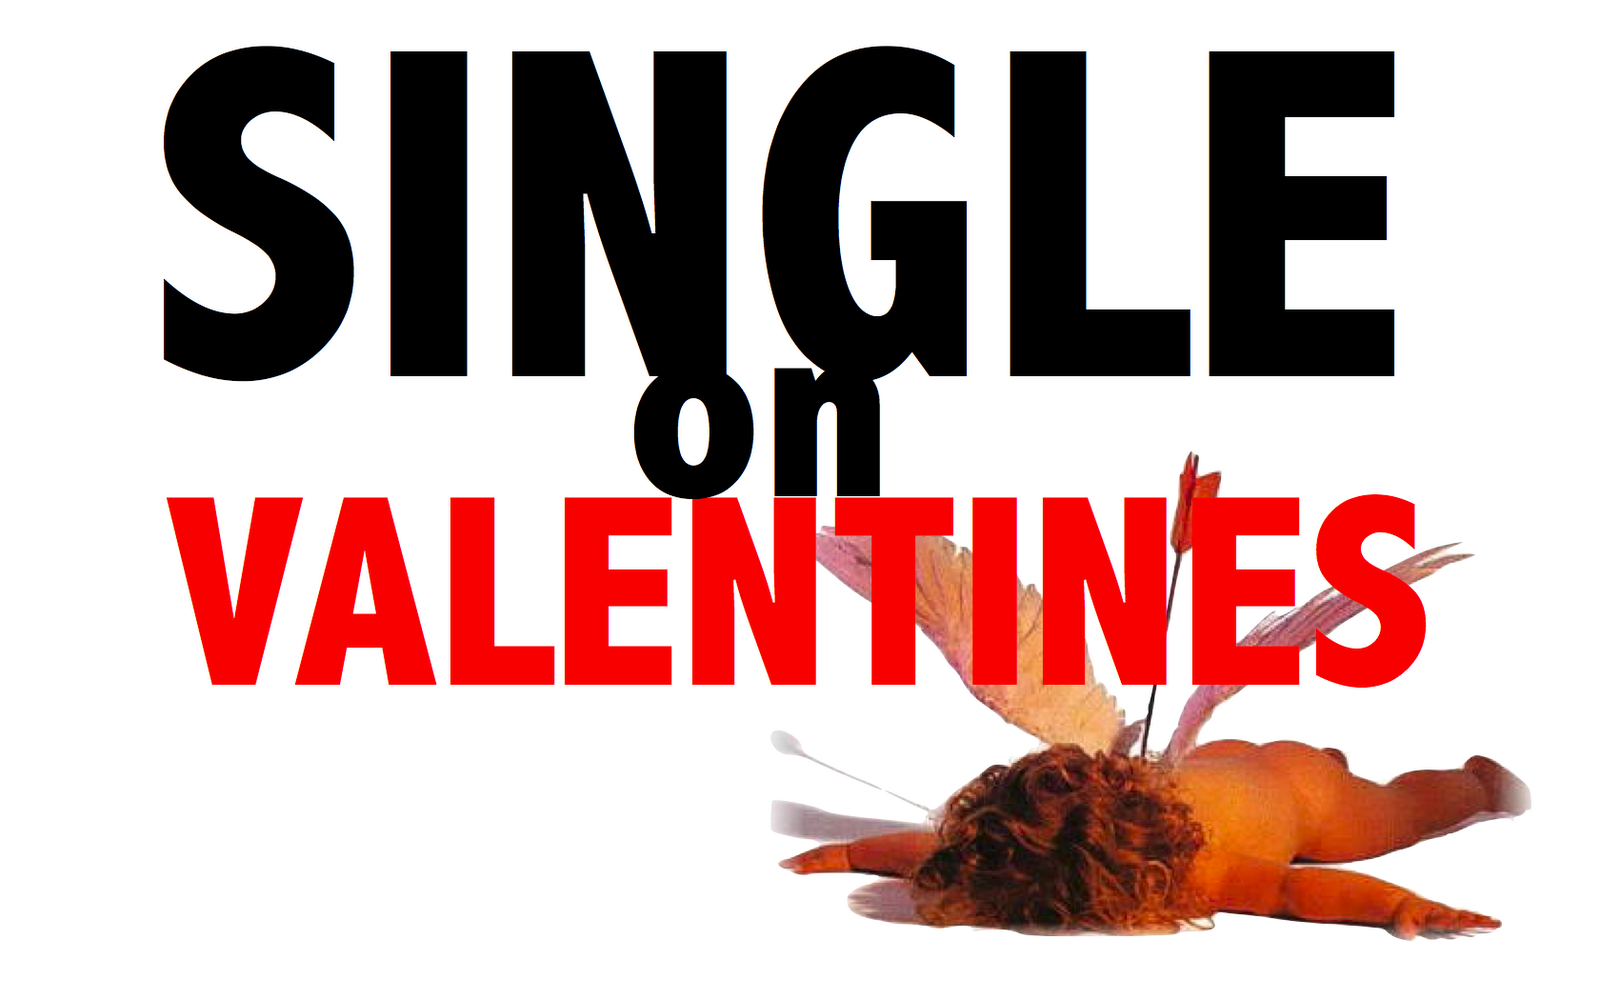 Funny Quotes About Valentines Day For Singles: How To Be Happy Being Single On Valentine's Day